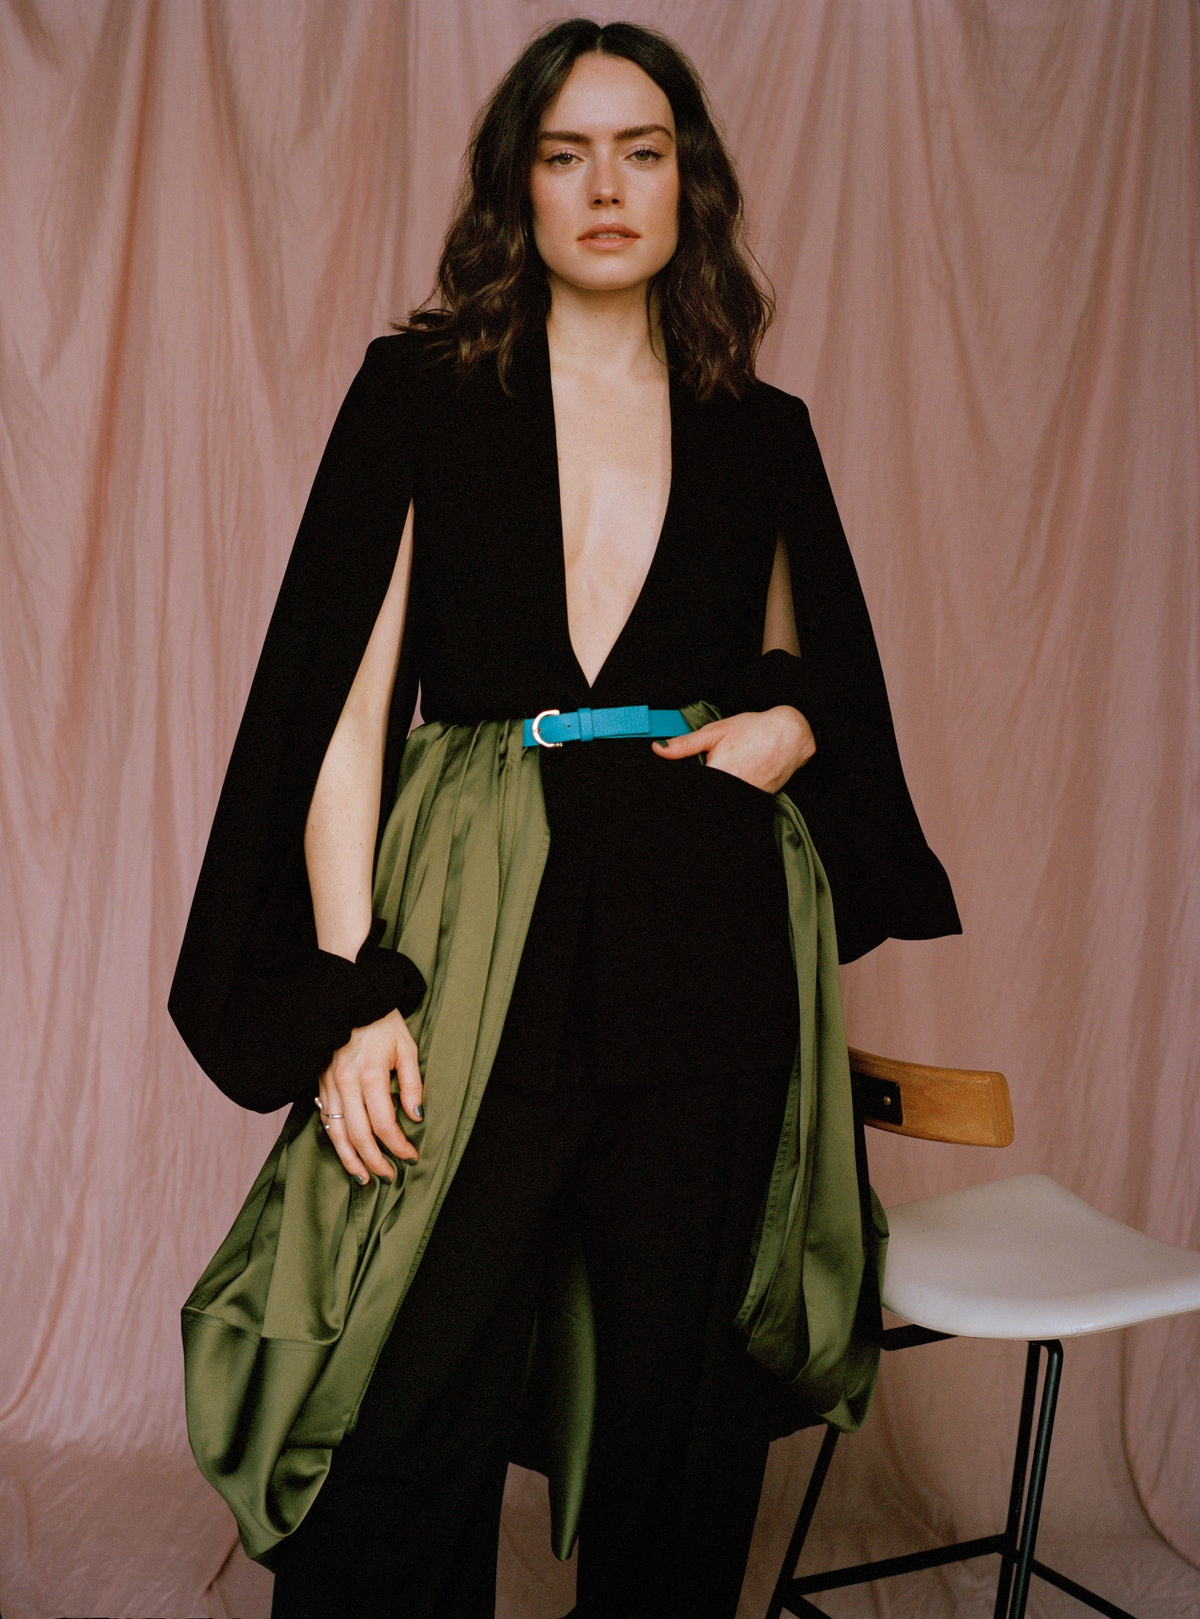 TZR cover star Daisy Ridley wears a black JW Anderson outfit with a colorful belt.